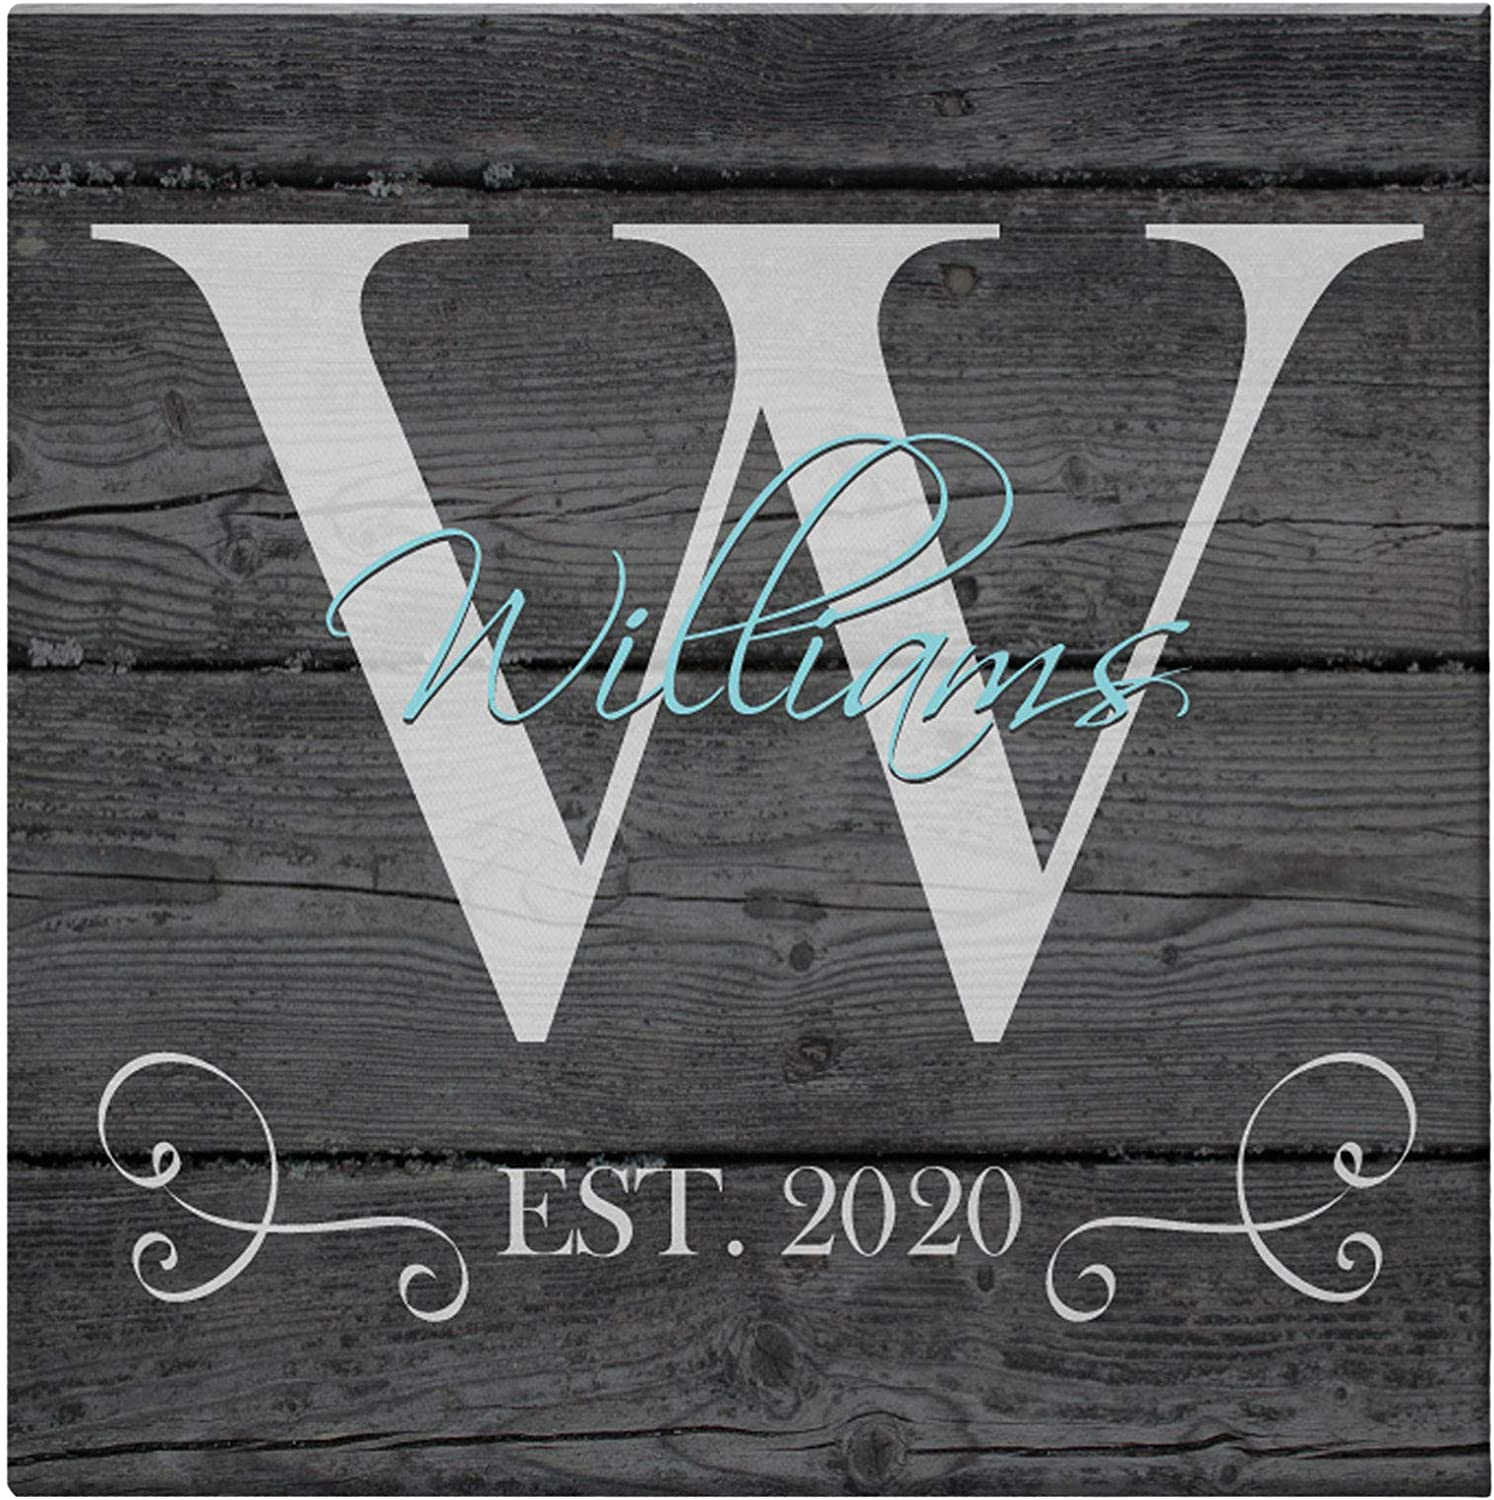 Let's Make Memories Family Dealing full price reduction Initial W Personalized Name Canvas Regular store